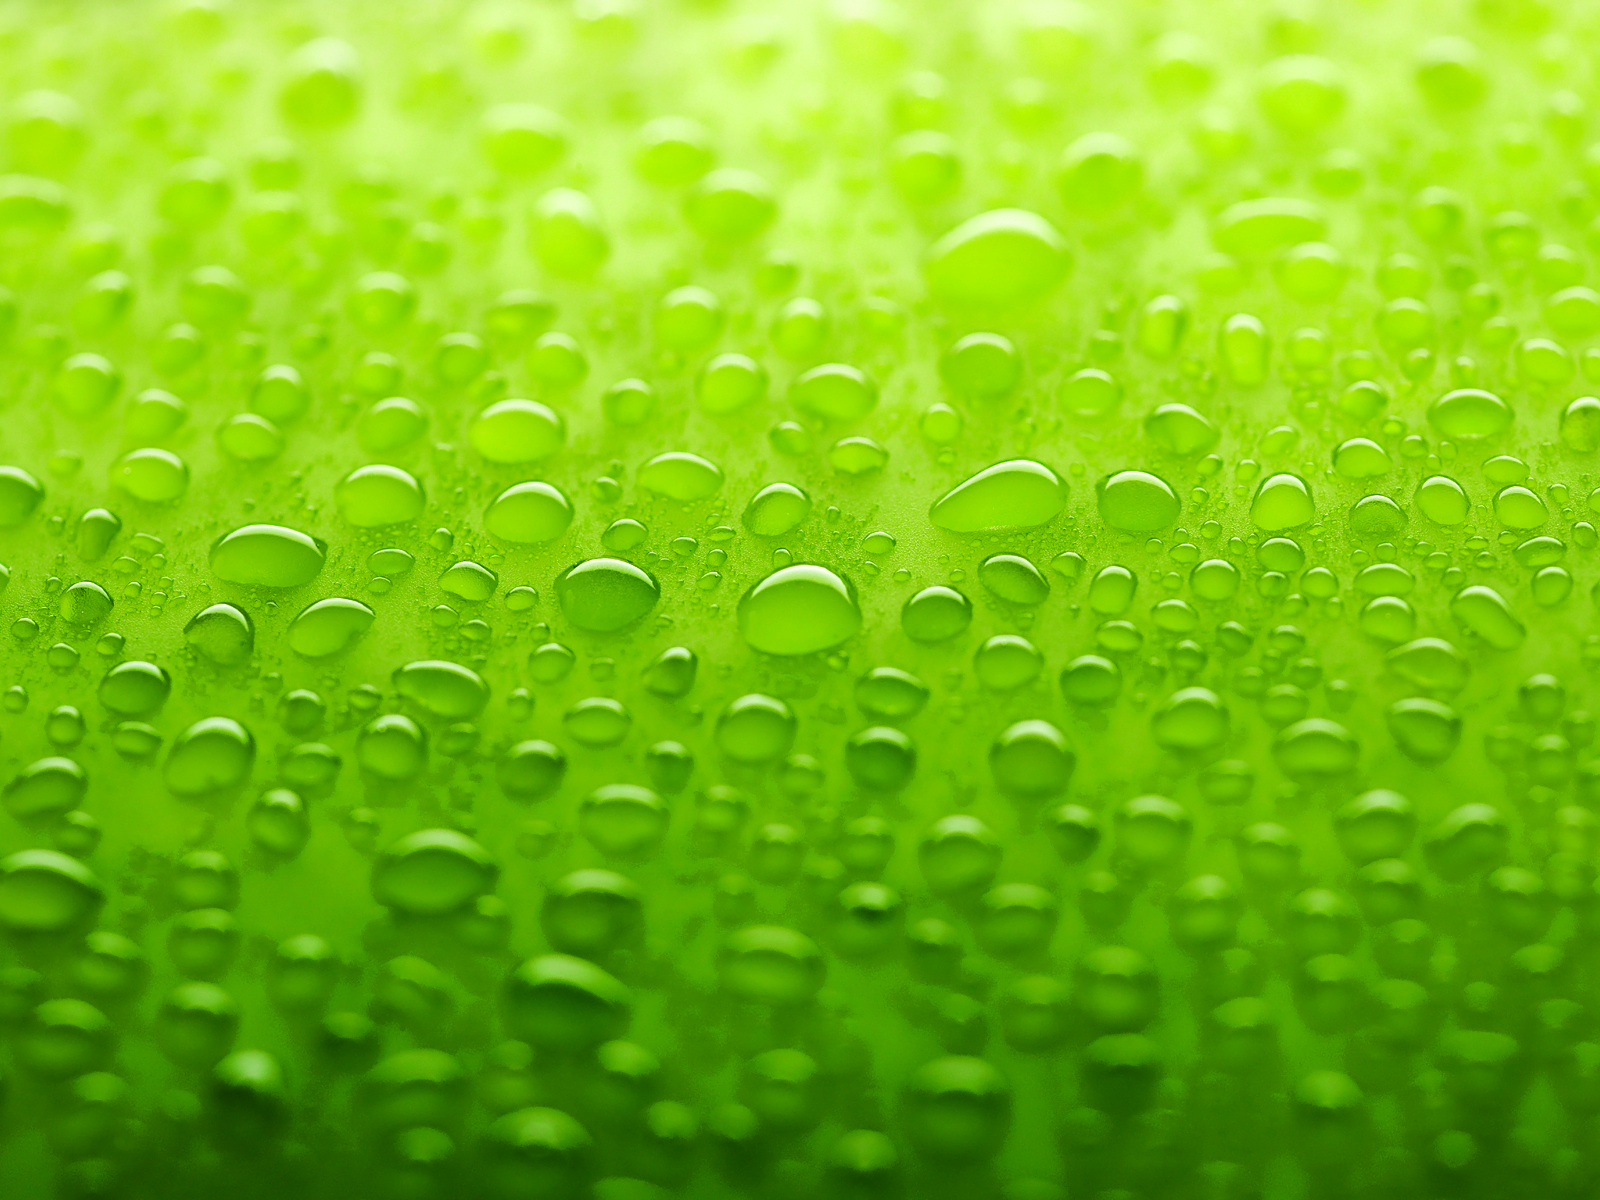 Hd wallpaper green - Hd Wallpaper And Background Photos Of Green Wallpaper For Fans Of Colors Images